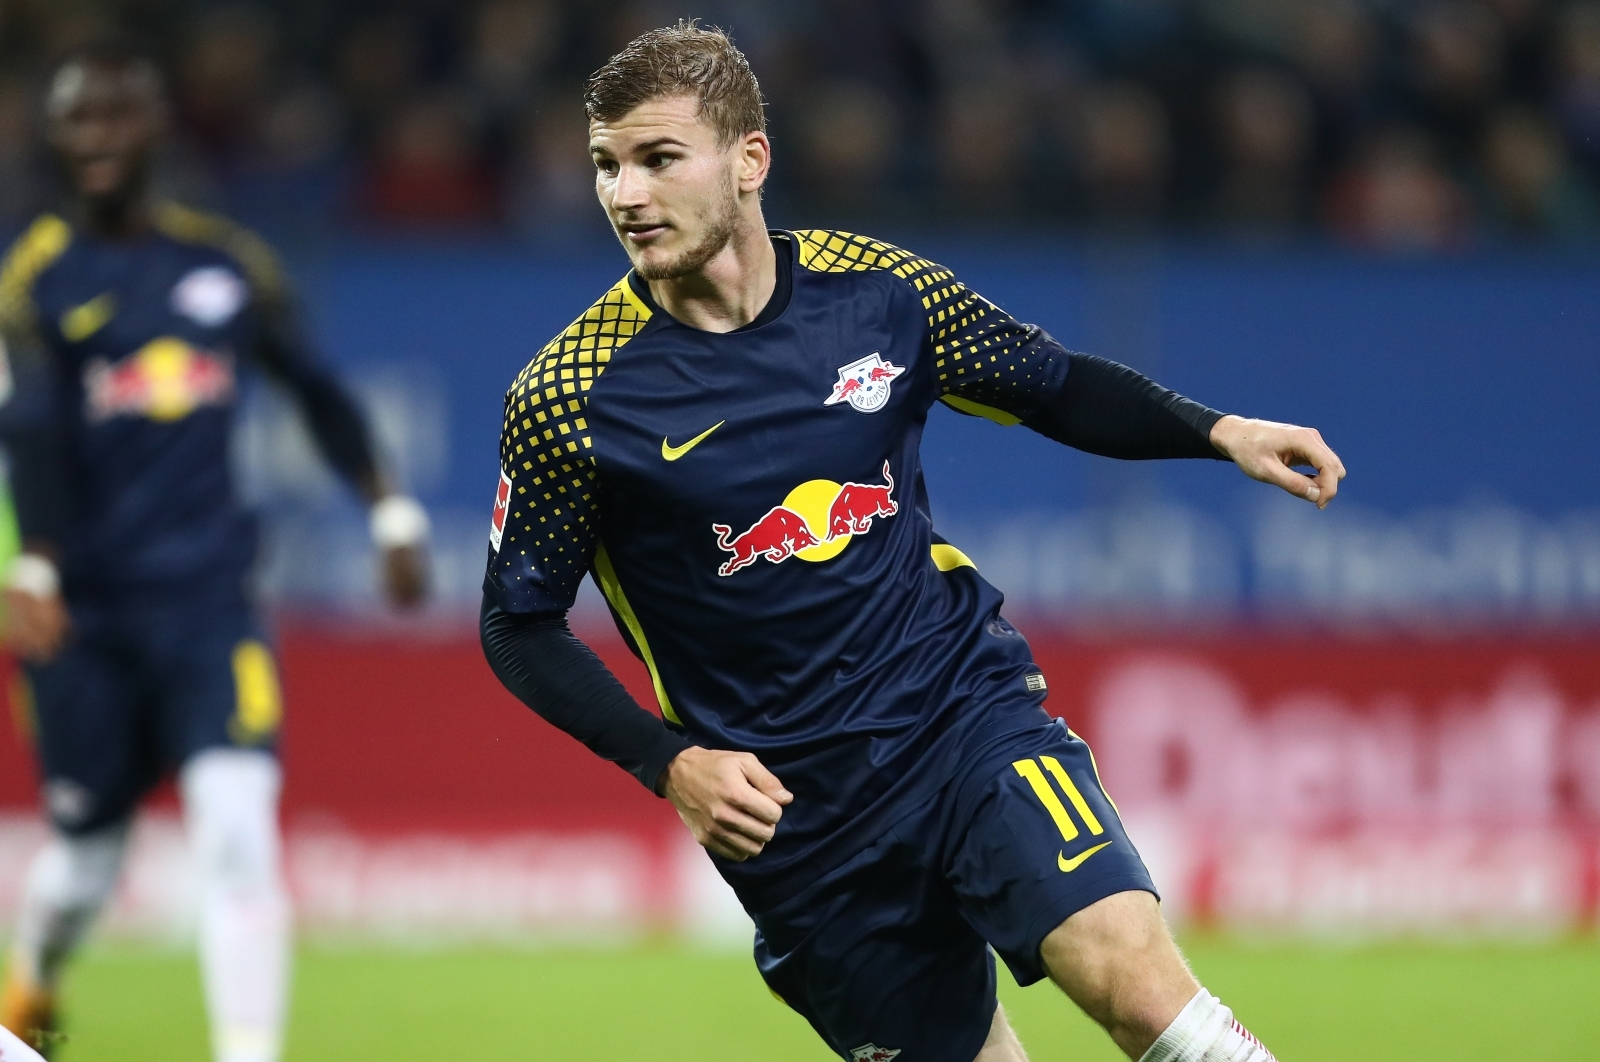 No release clause for Liverpool target Timo Werner